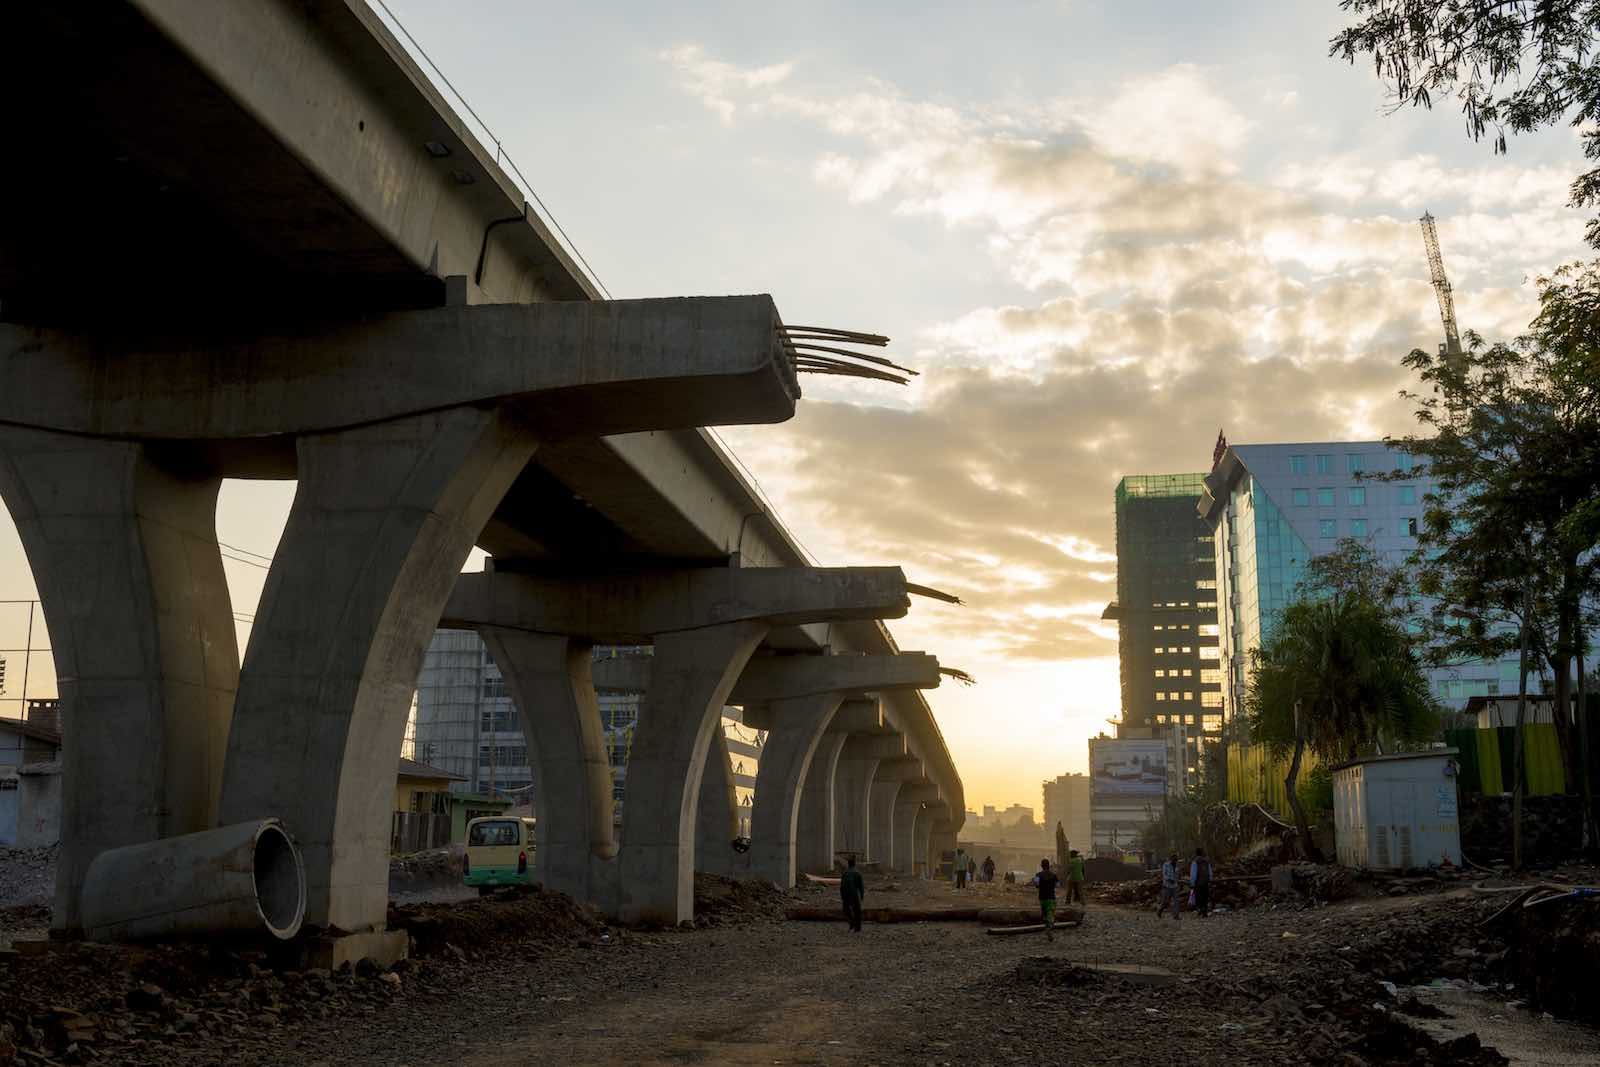 Light rail system under construction in Addis Ababa, Ethiopia, contracted by the China Railway Group Ltd (Photo: Yannick Tylle/Getty Images)